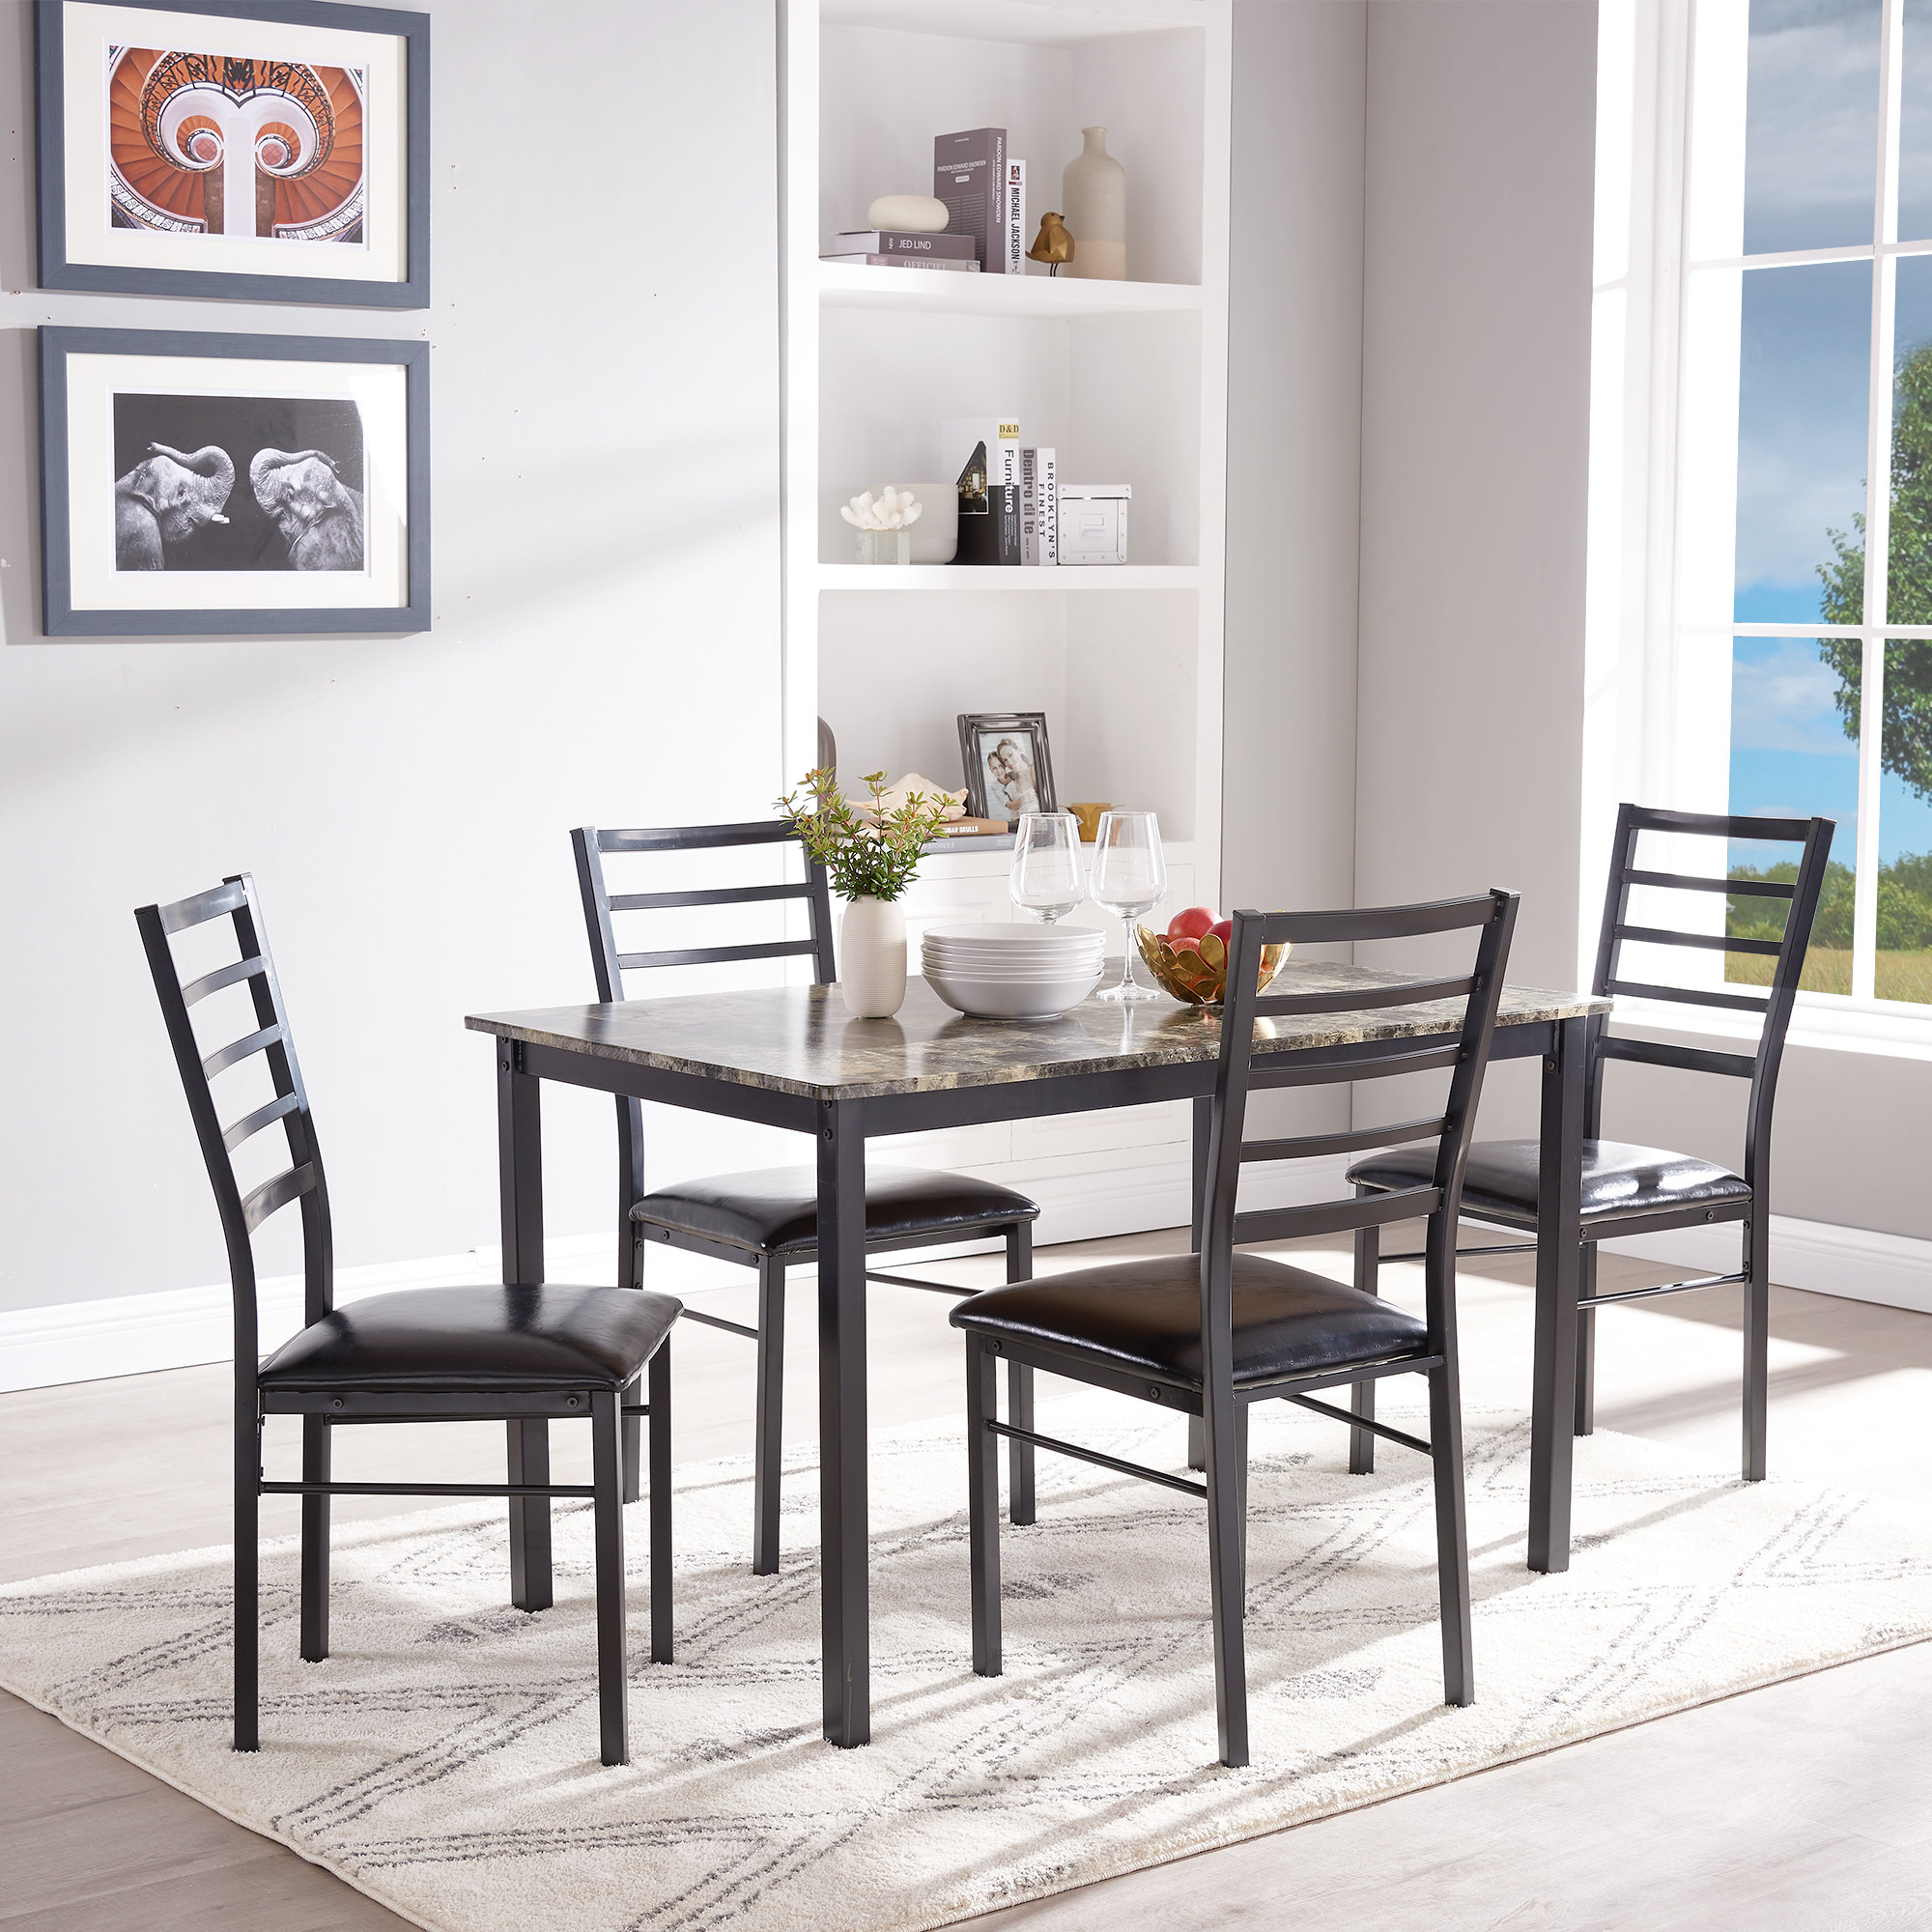 Details About Winston Porter Mukai 5 Piece Dining Set Within Most Up To Date Casiano 5 Piece Dining Sets (View 14 of 20)